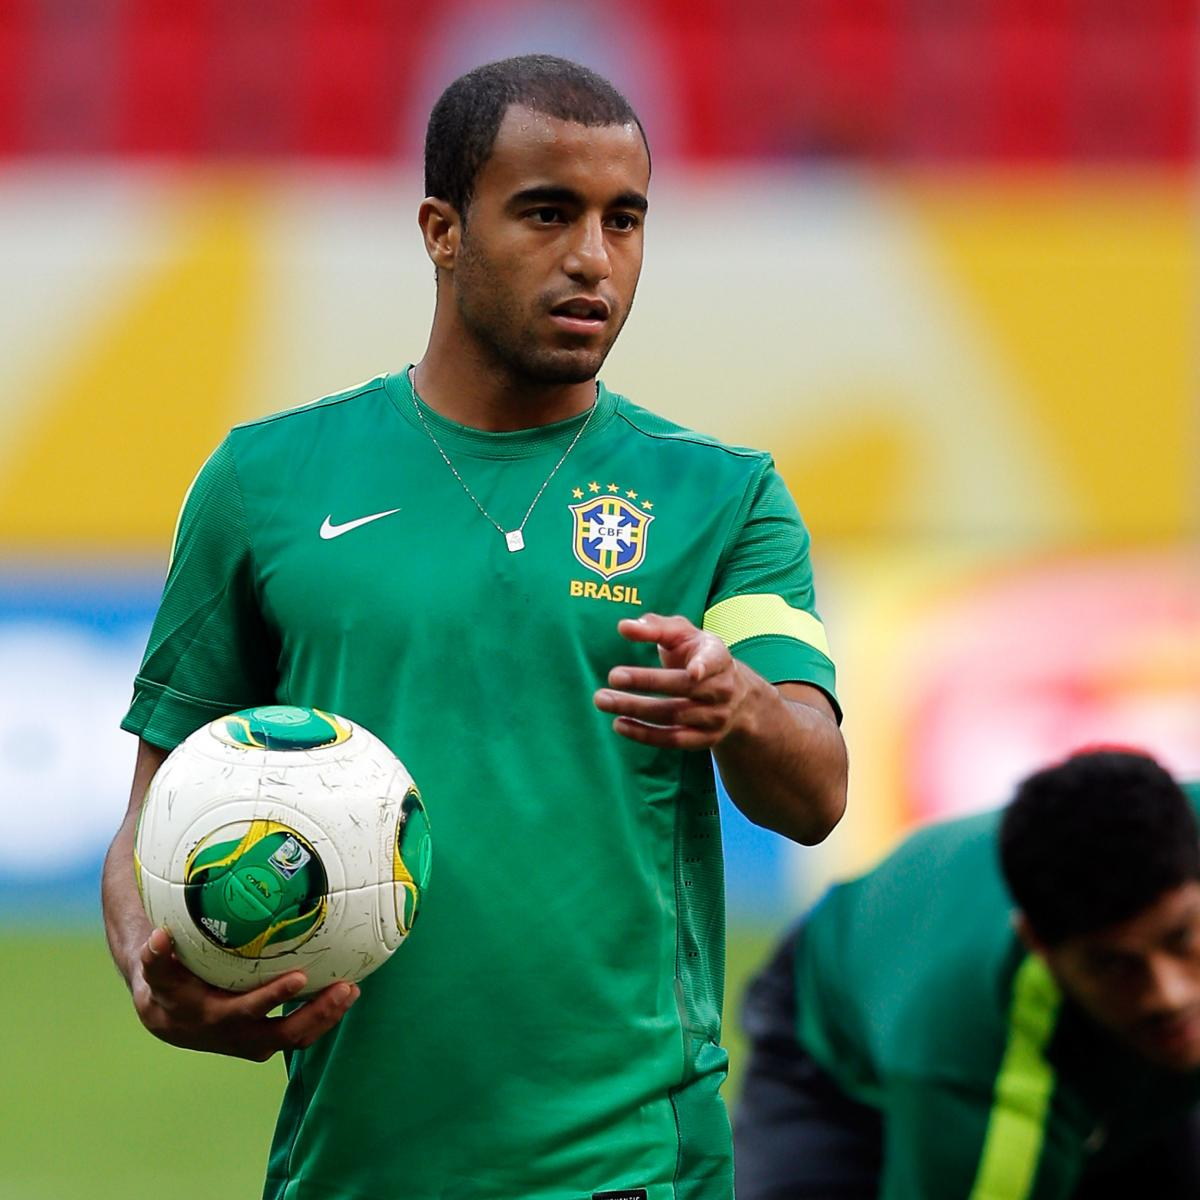 Confederations Cup 2013: Should Lucas Moura Replace Hulk